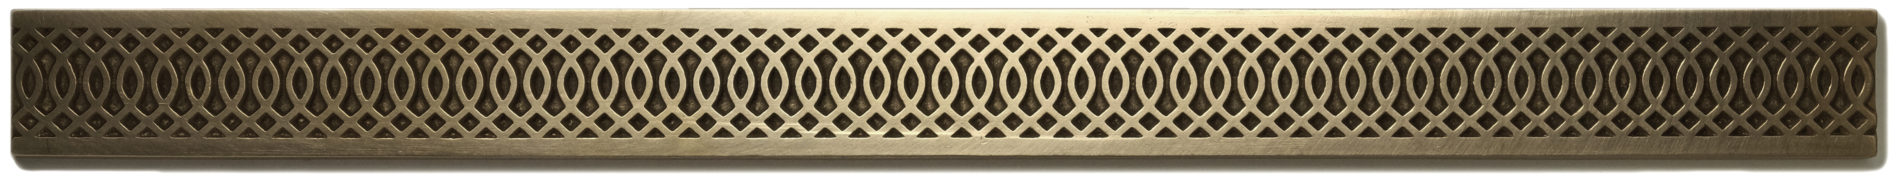 Octave   1x12 inch accent liner   Traditional Bronze